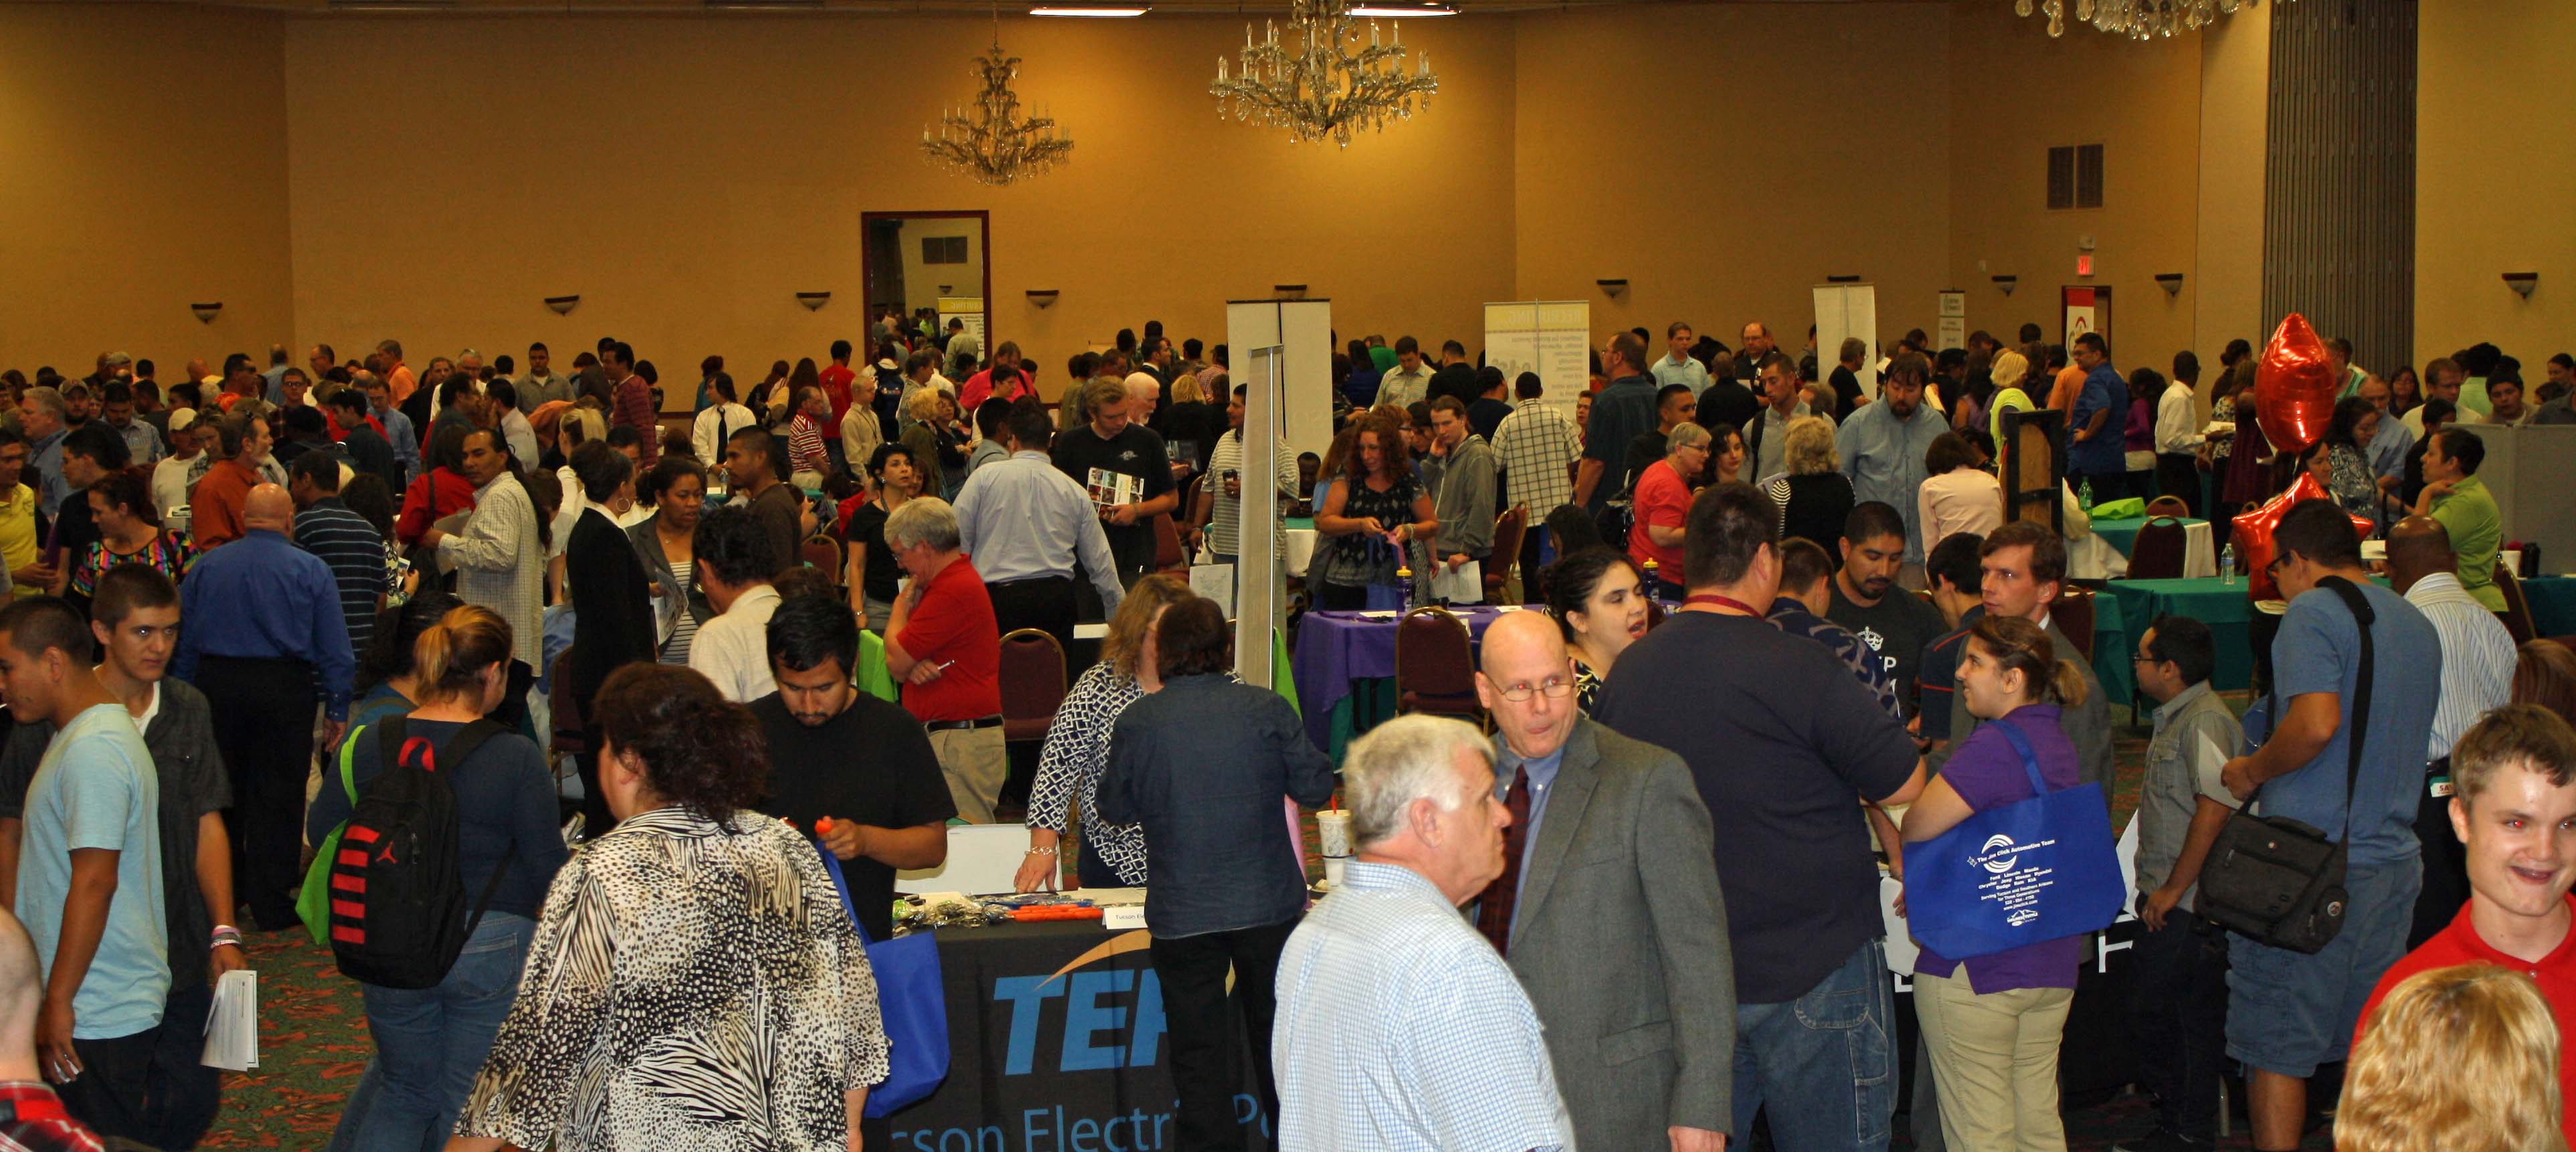 pima-job-fair-crowd-2014